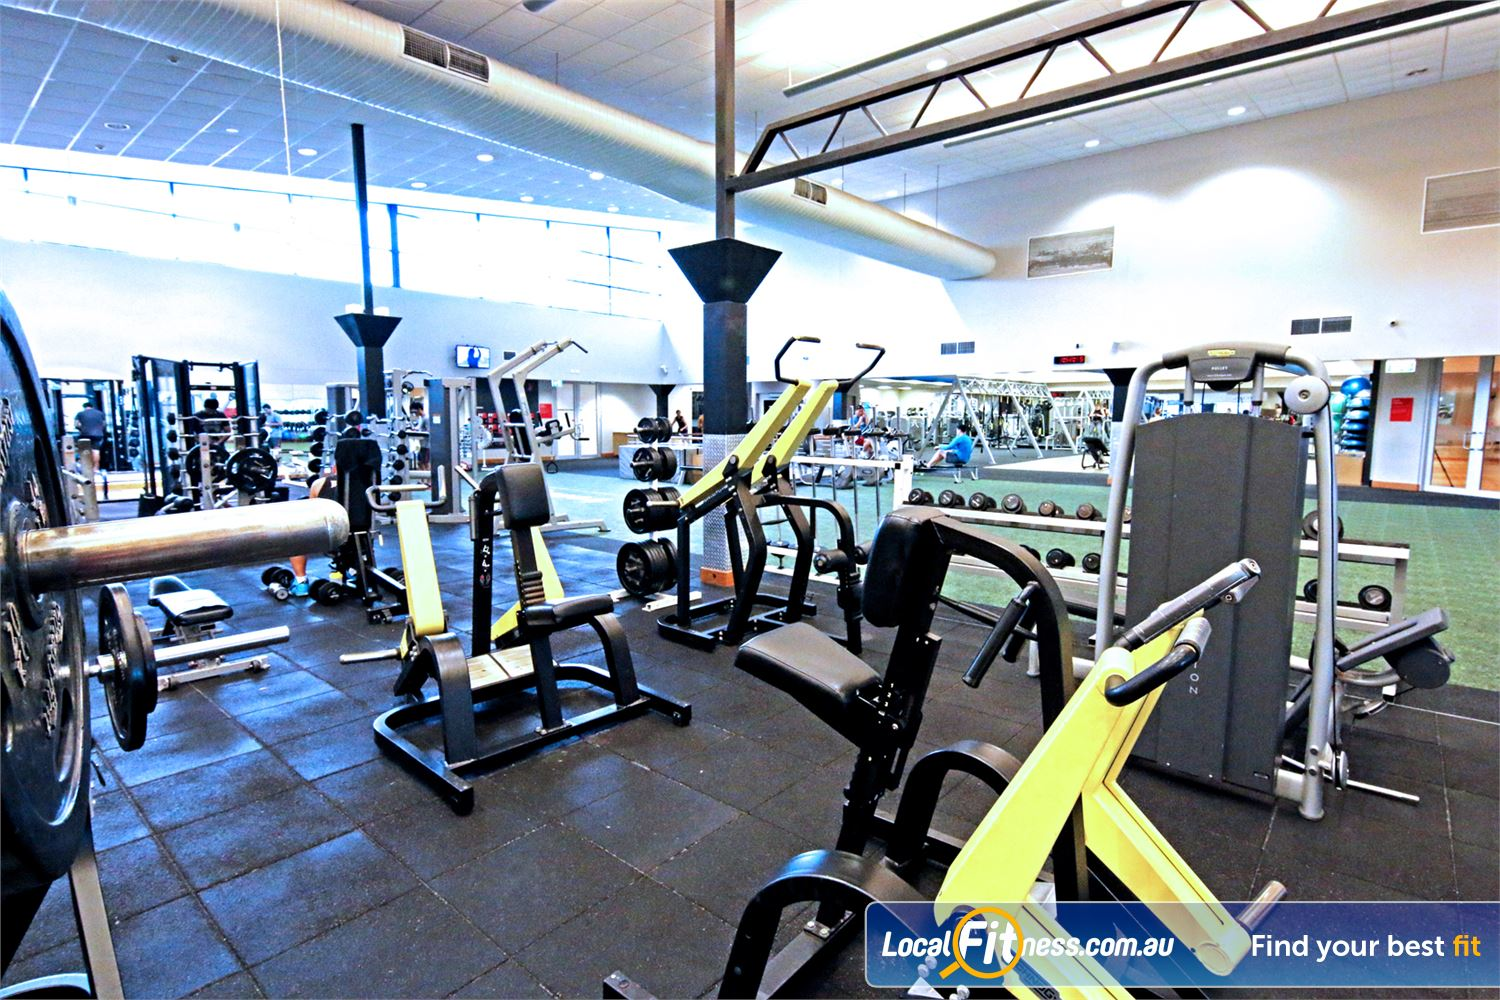 Fitness First Carindale Our Carindale gym is fully equipped for strength training.